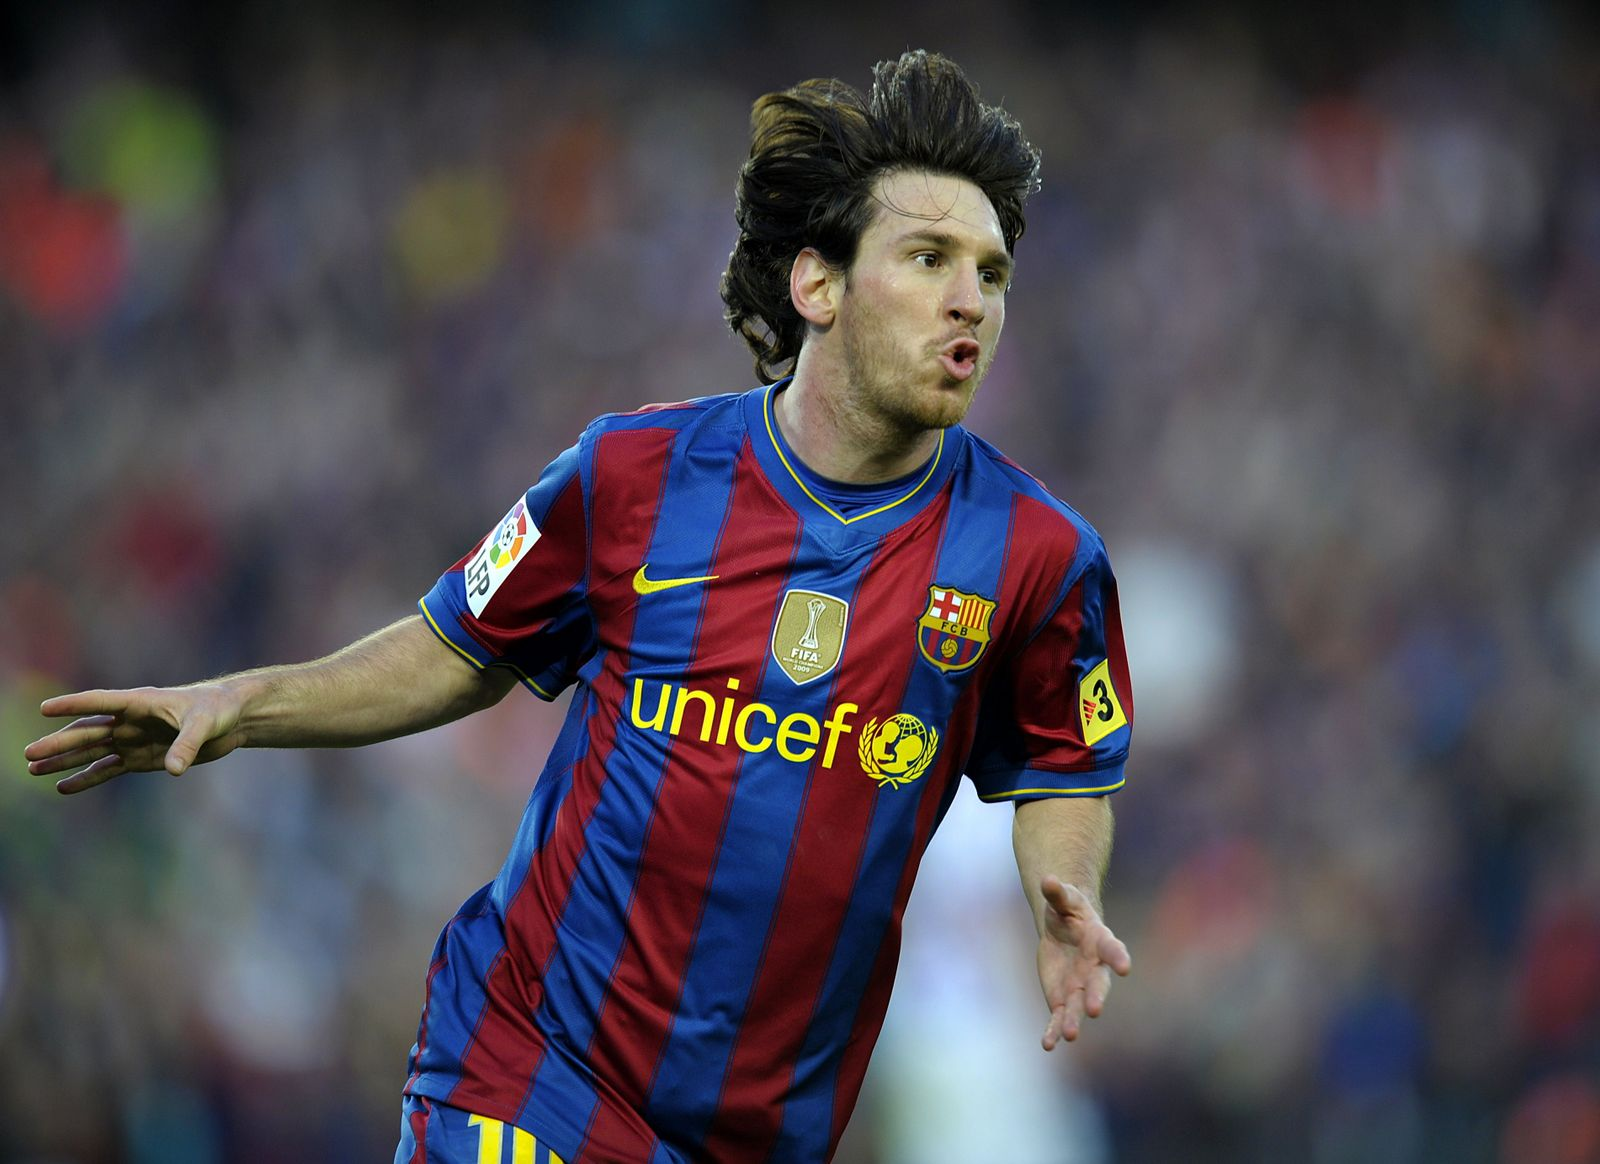 Lionel messis imminent record should inspire awe barcelonas argentinian forward lionel m voltagebd Gallery